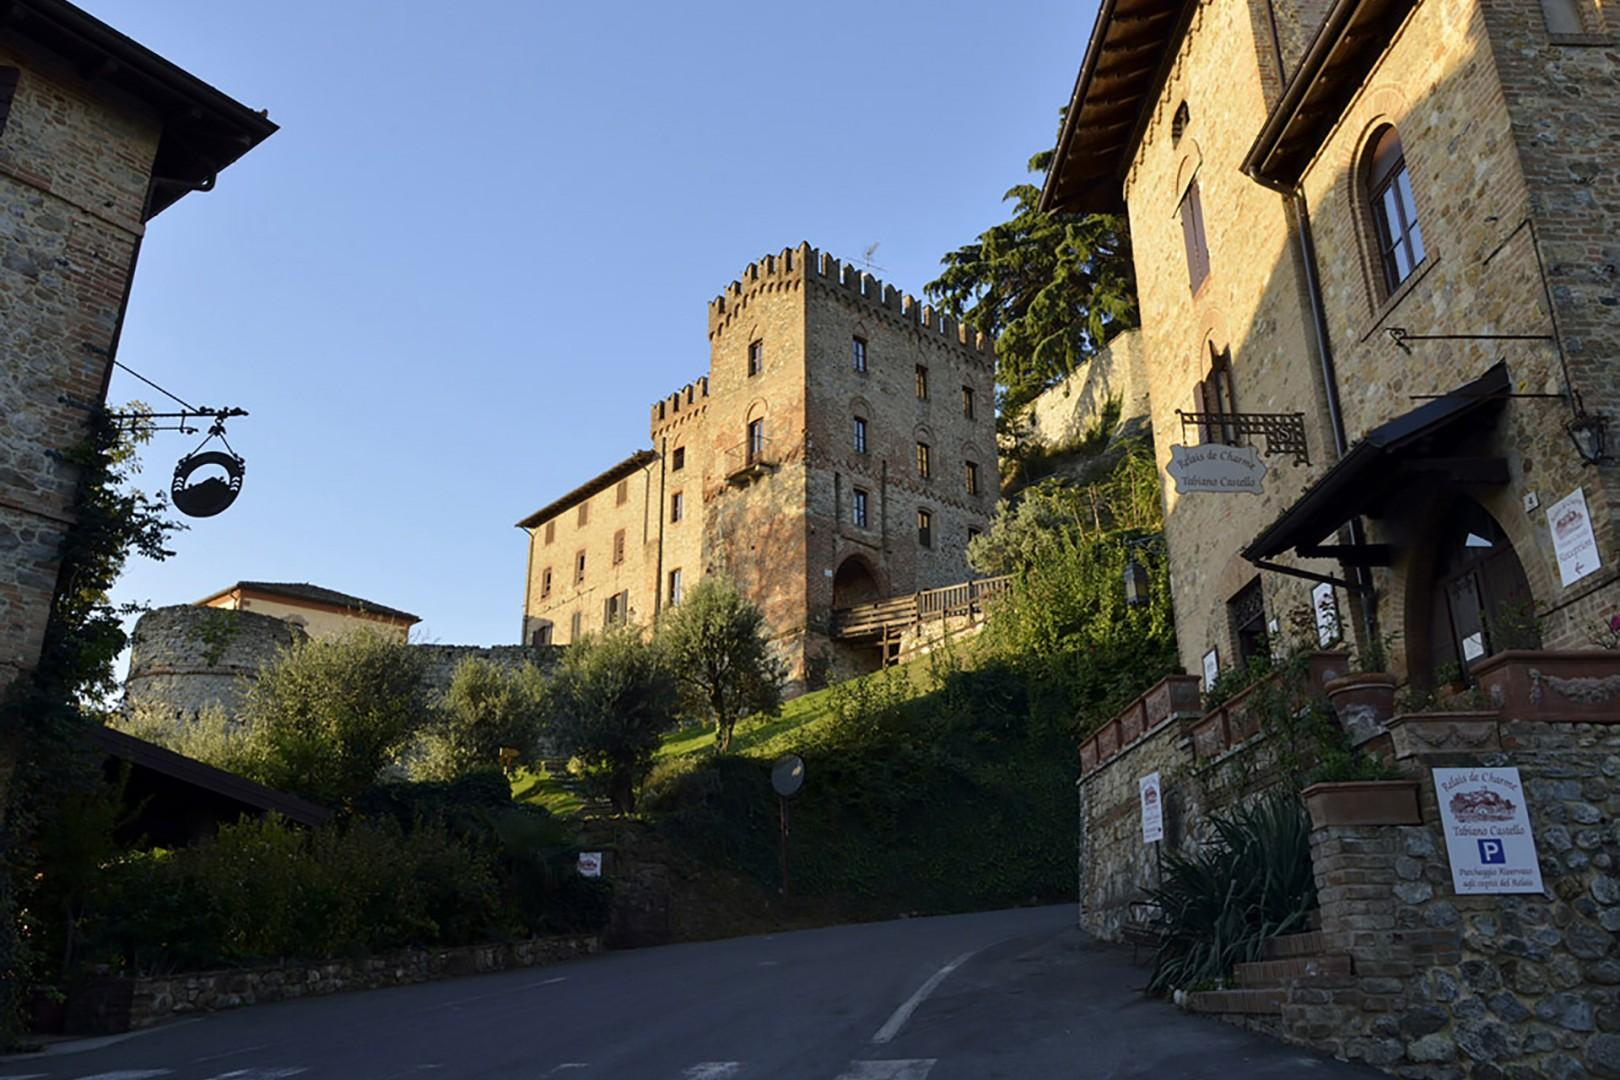 Charming streets of village that surrounds the castle.